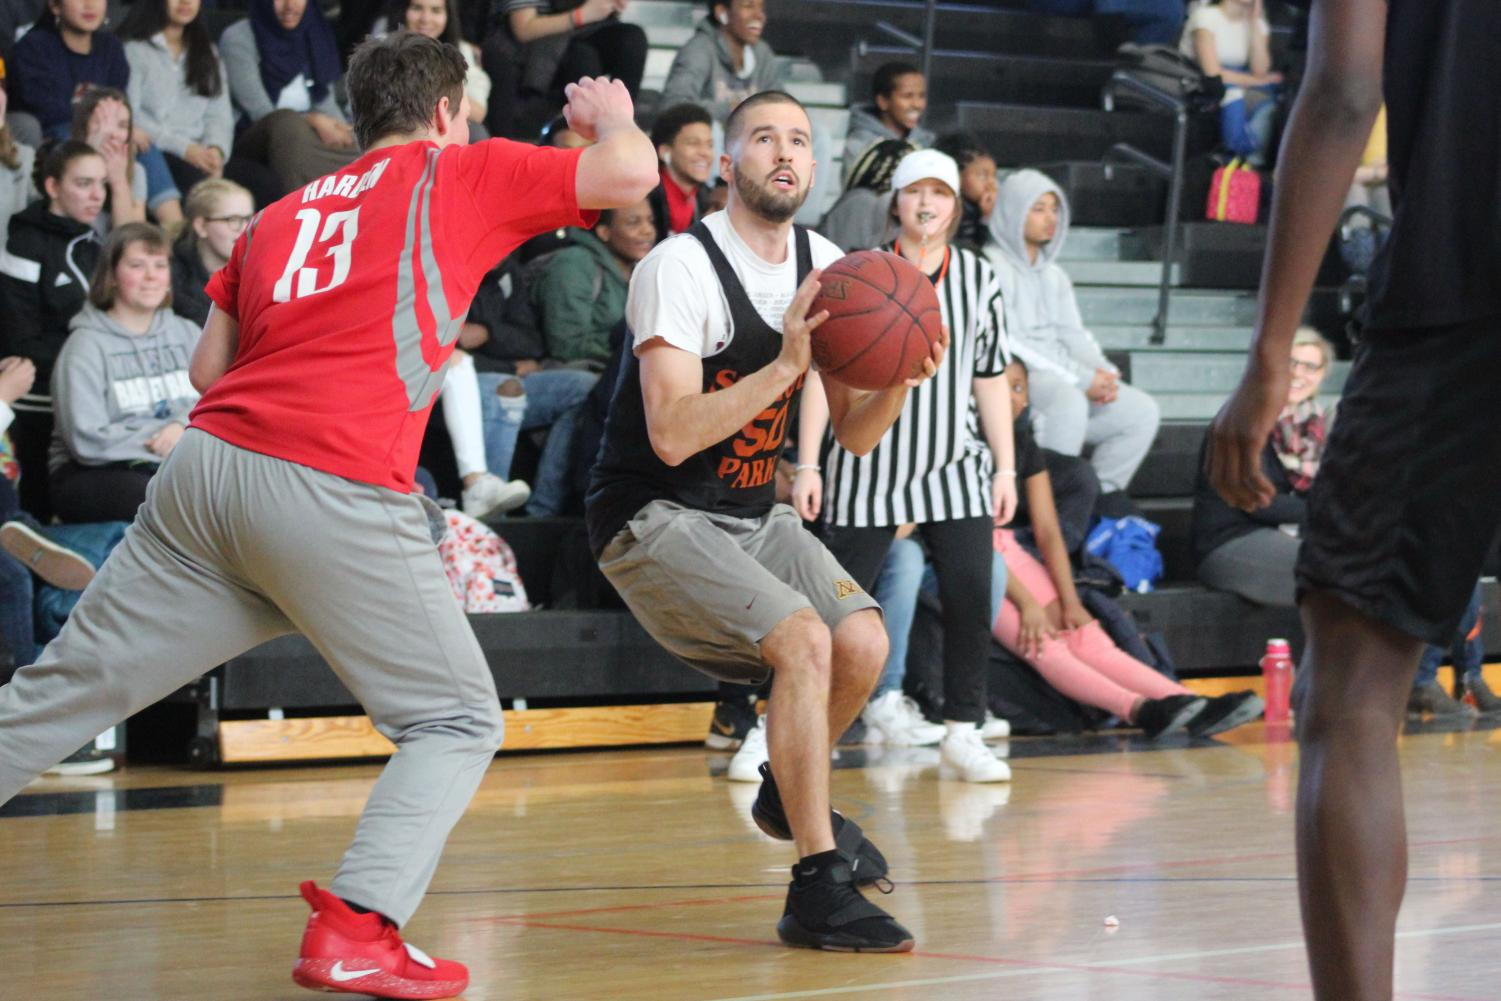 Basketball%2C+Track+and+Cross+Country+coach+Chris+Nordstorm+prepares+to+shoot+the+ball+around+sophomore+Sam+Hunt.+The+teachers+won+for+the+second+time+on+Feb.+15+at+the+second+annual+game.